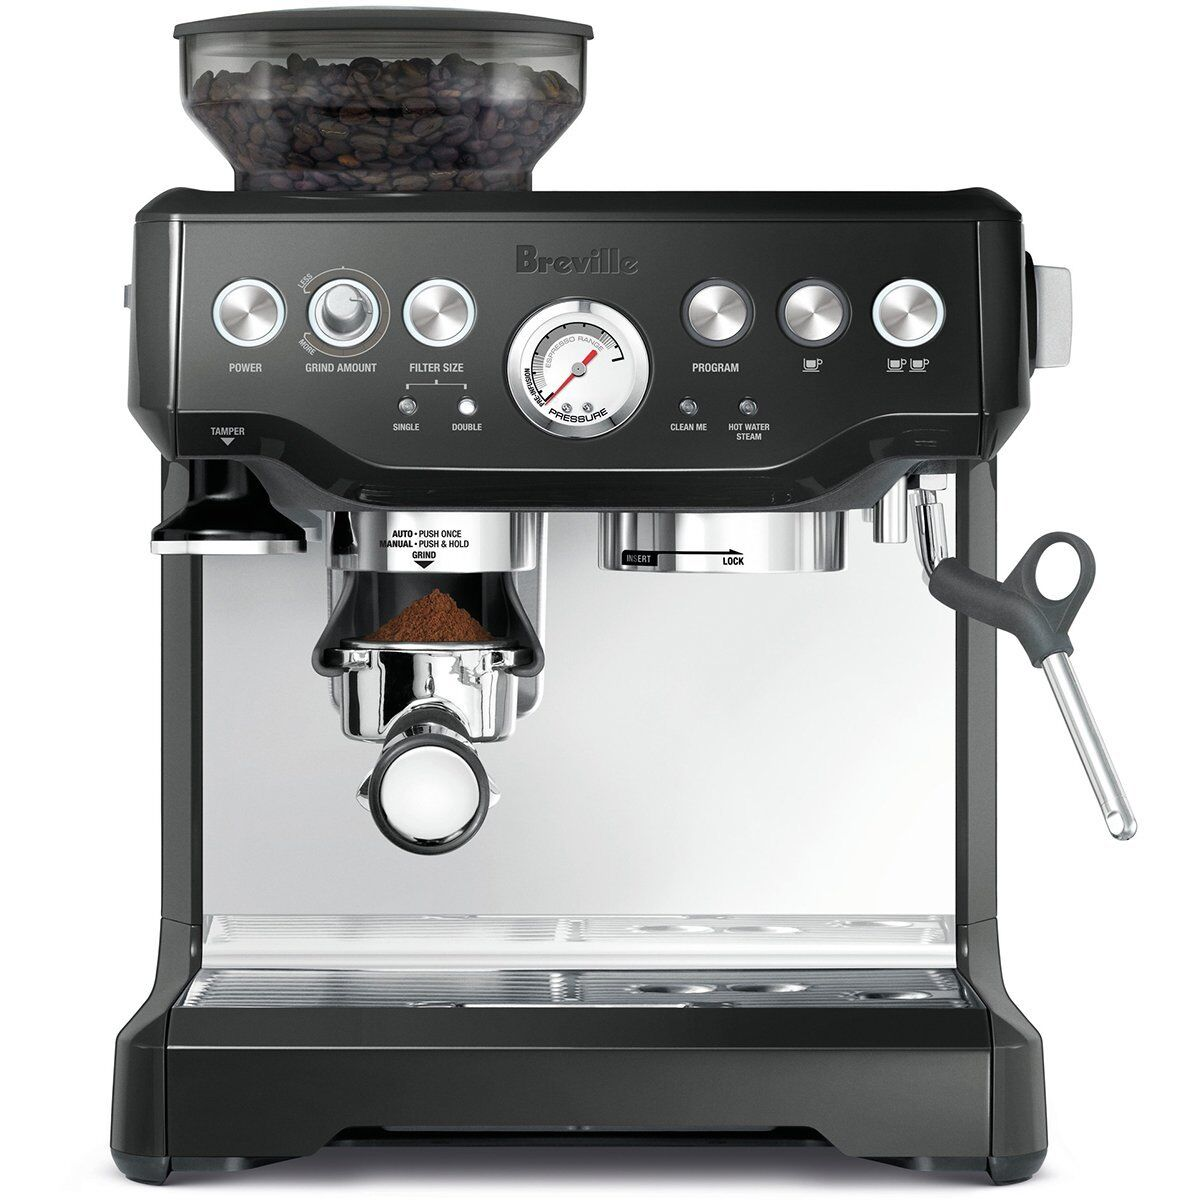 Breville The Barista Express Coffee Machine Maker (Black)